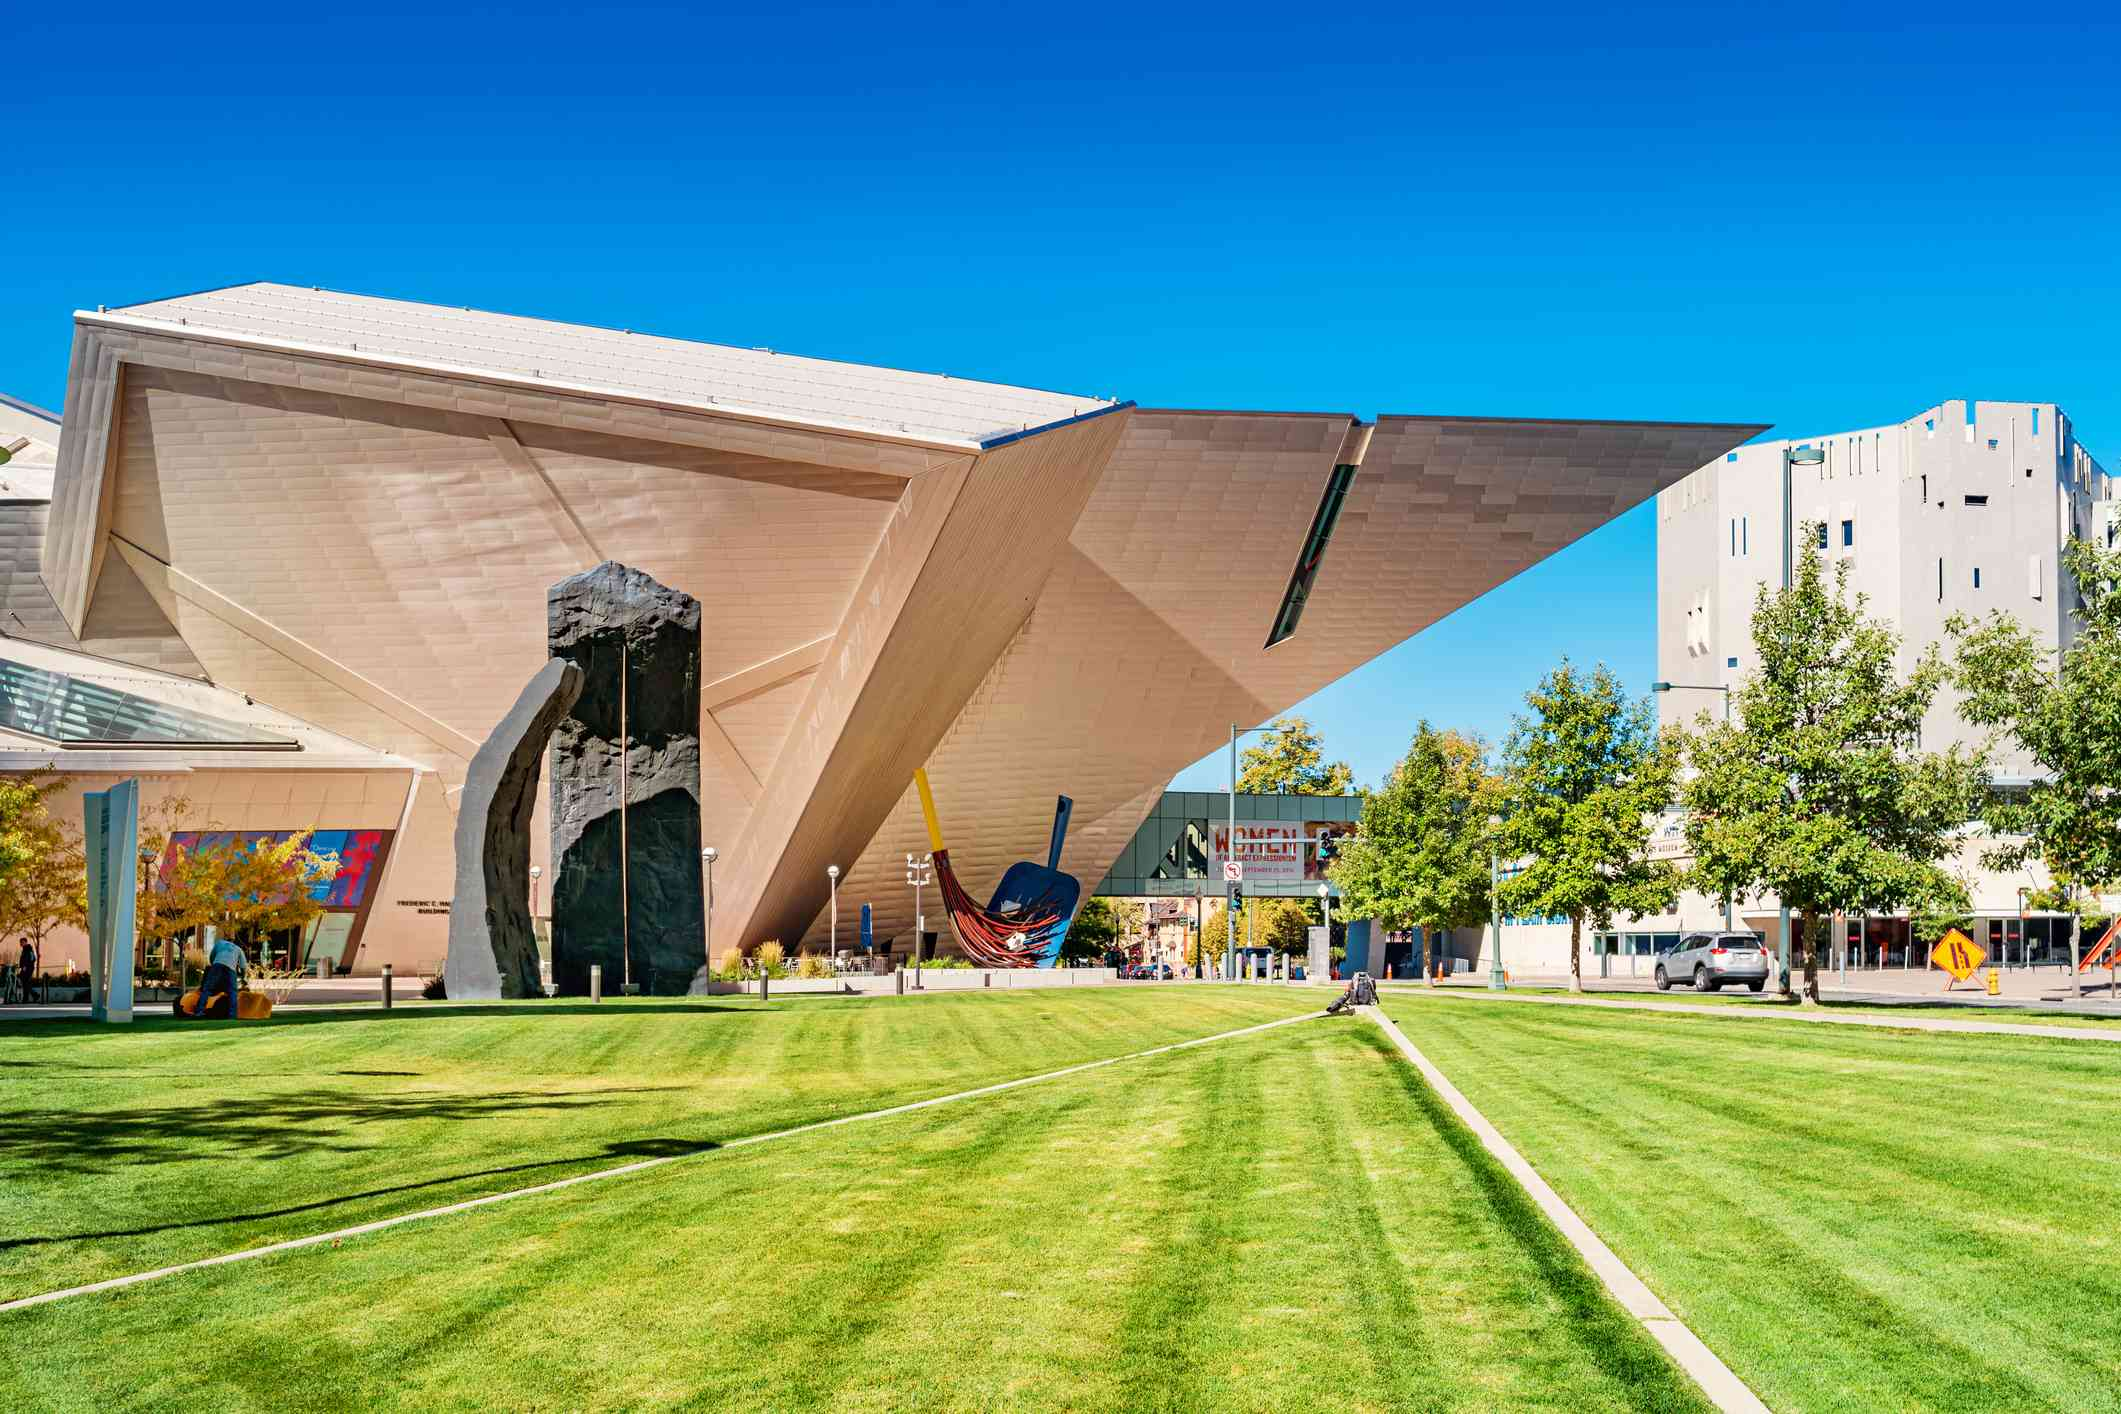 Lawn of the Denver Art Museum in downtown Denver, Colorado with sculptures on the lawn